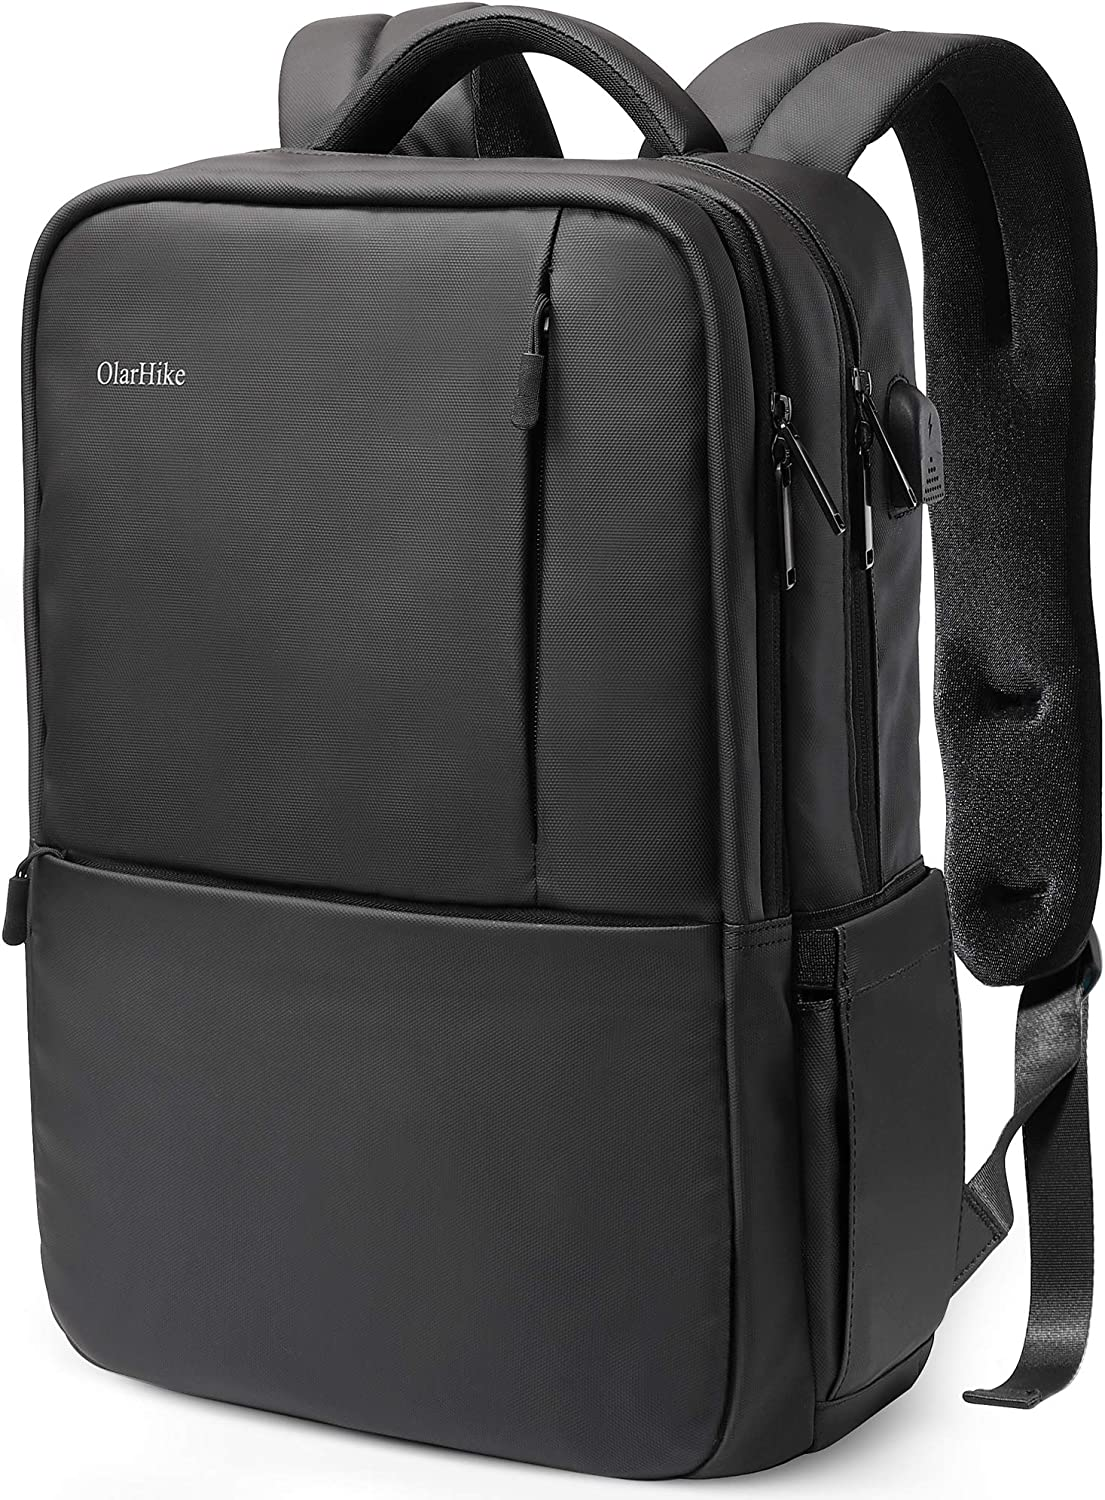 OlarHike Laptop Backpack with USB Charging Port and Thick Padded Sleeve Water Resistant College School Computer Backpack Fits up 15.6 Inch Laptop for Men Women: Electronics